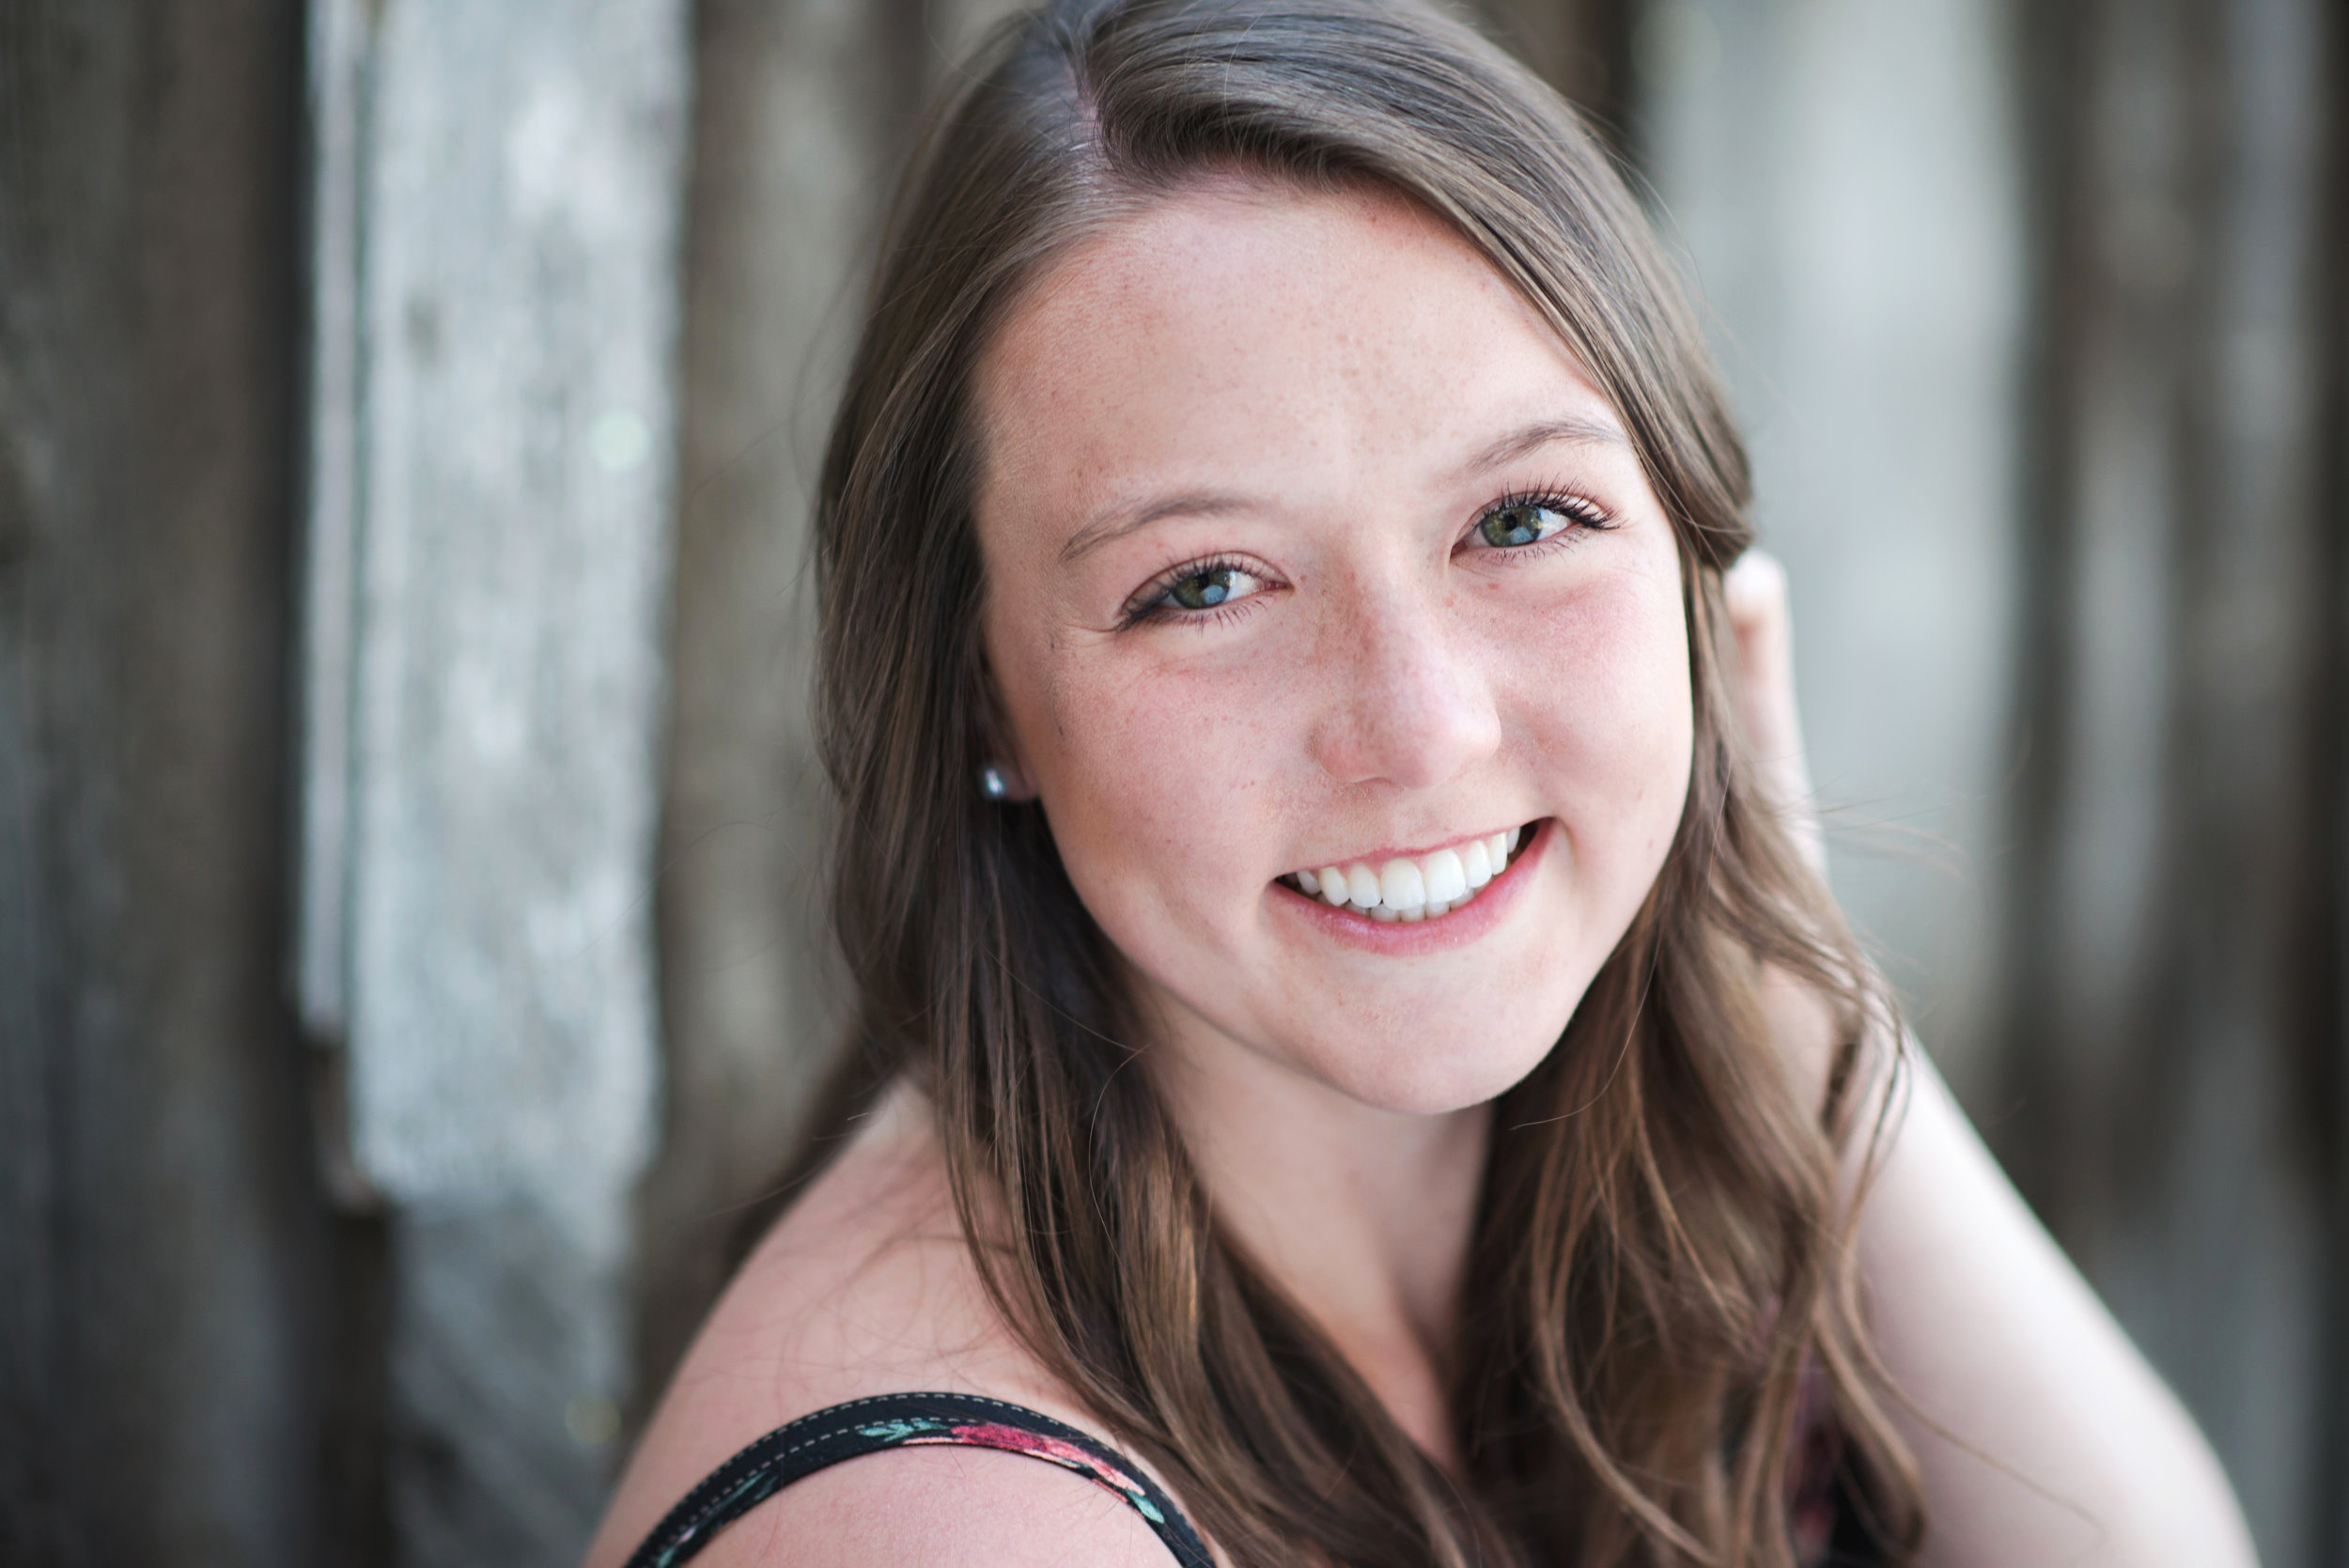 MaryVance - senior - girl - portrait - sammamish - washington - photographer _18_MaryVance-Evoke-Day2-DSC_3231_7.jpg